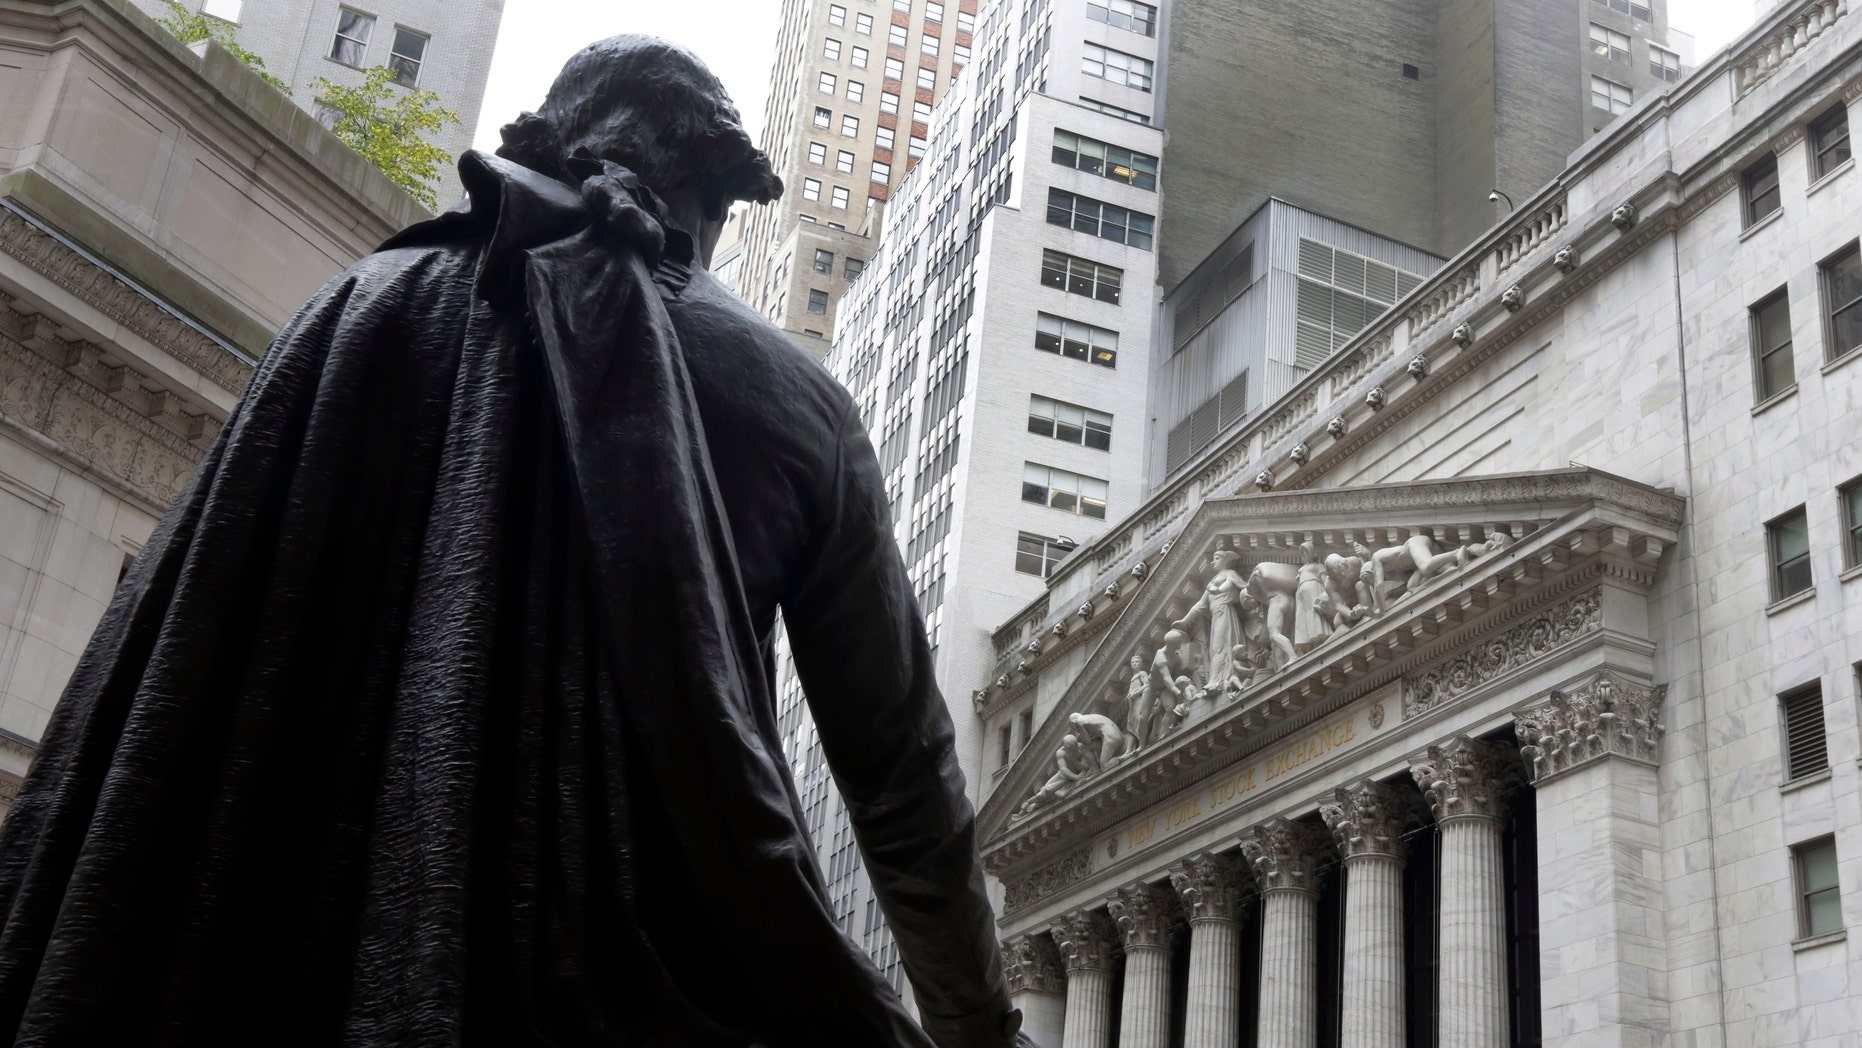 FILE - In this Oct. 2, 2014, file photo, the statue of George Washington on the steps of Federal Hall faces the facade of the New York Stock Exchange. U.S. employers added a vigorous 257,000 jobs in January, and wages jumped by the most in six years, evidence that the job market is accelerating closer to full health. The surprisingly robust report the government issued Friday, Feb. 6, 2015 also showed that hiring was far stronger in November and December than it had previously estimated.  .(AP Photo/Richard Drew, File)